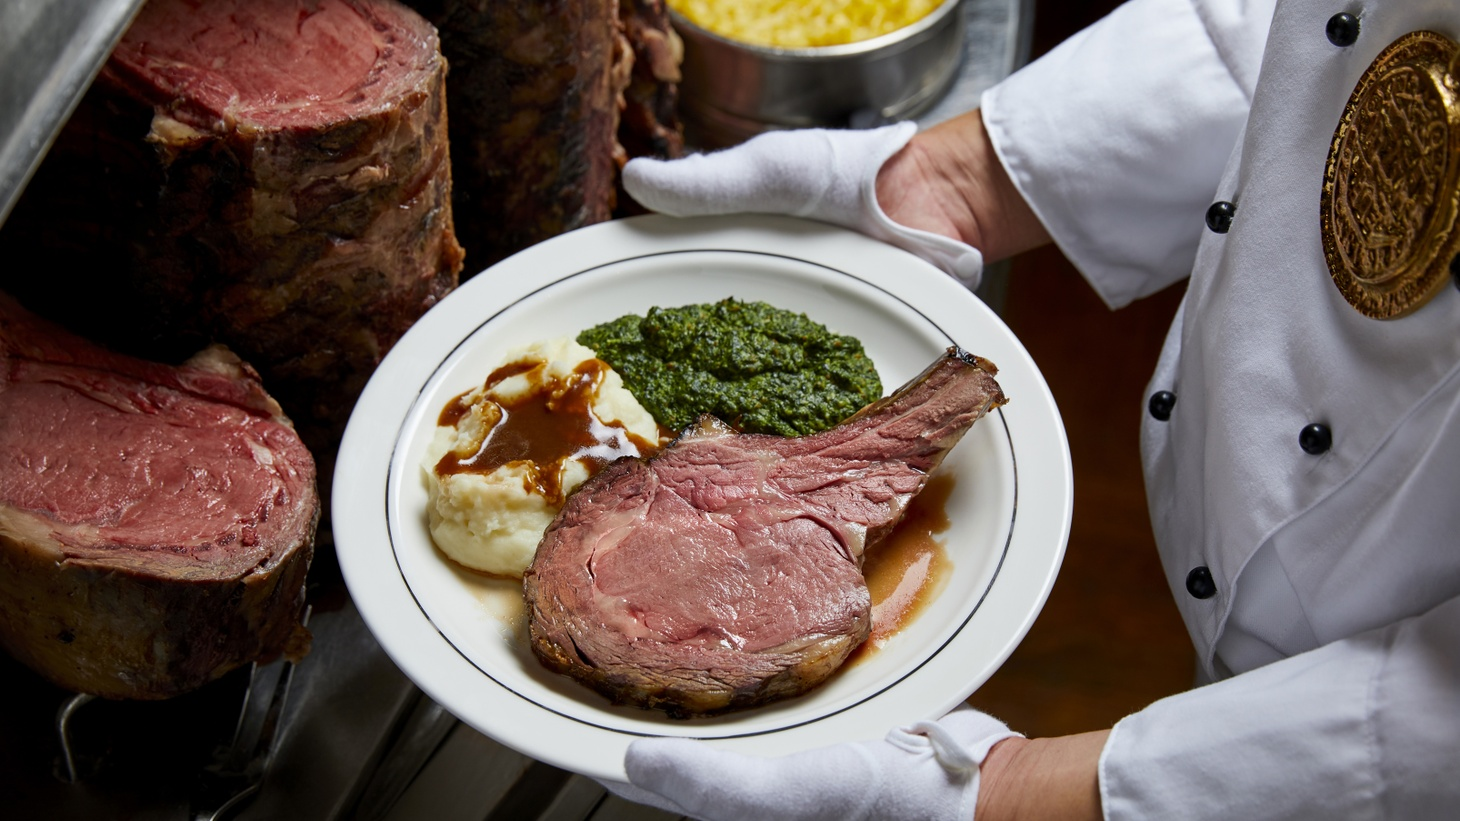 Patrons pick the temperature and size of their cut when ordering the signature prime rib and its famous sides at Lawry's on Restaurant Row.